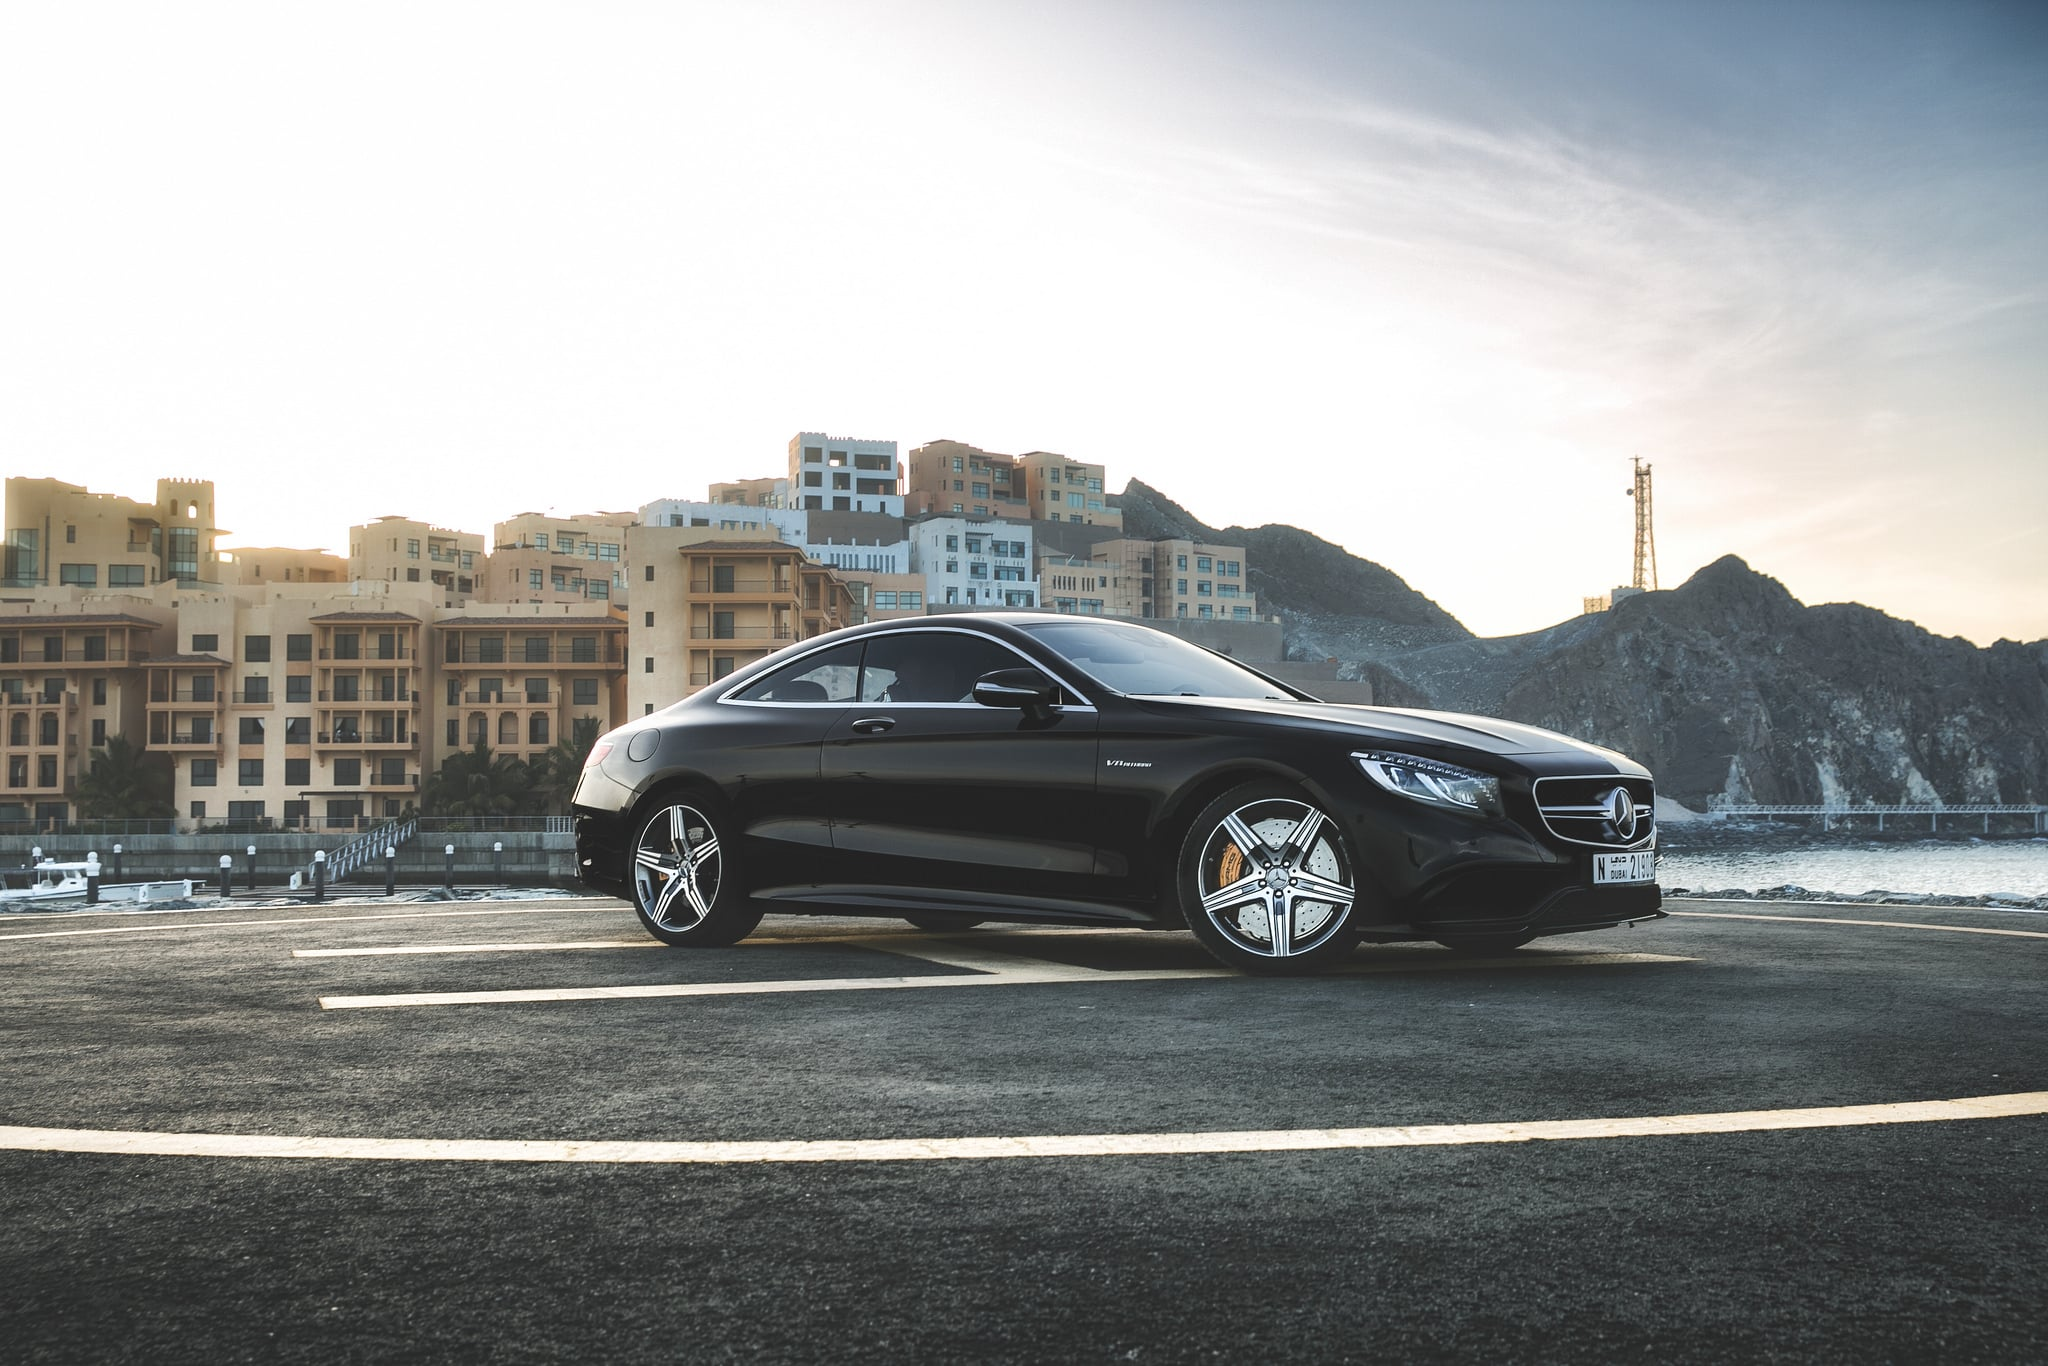 Mercedes Benz AMG S63 Coupe wallpapers HD Download 2048x1366